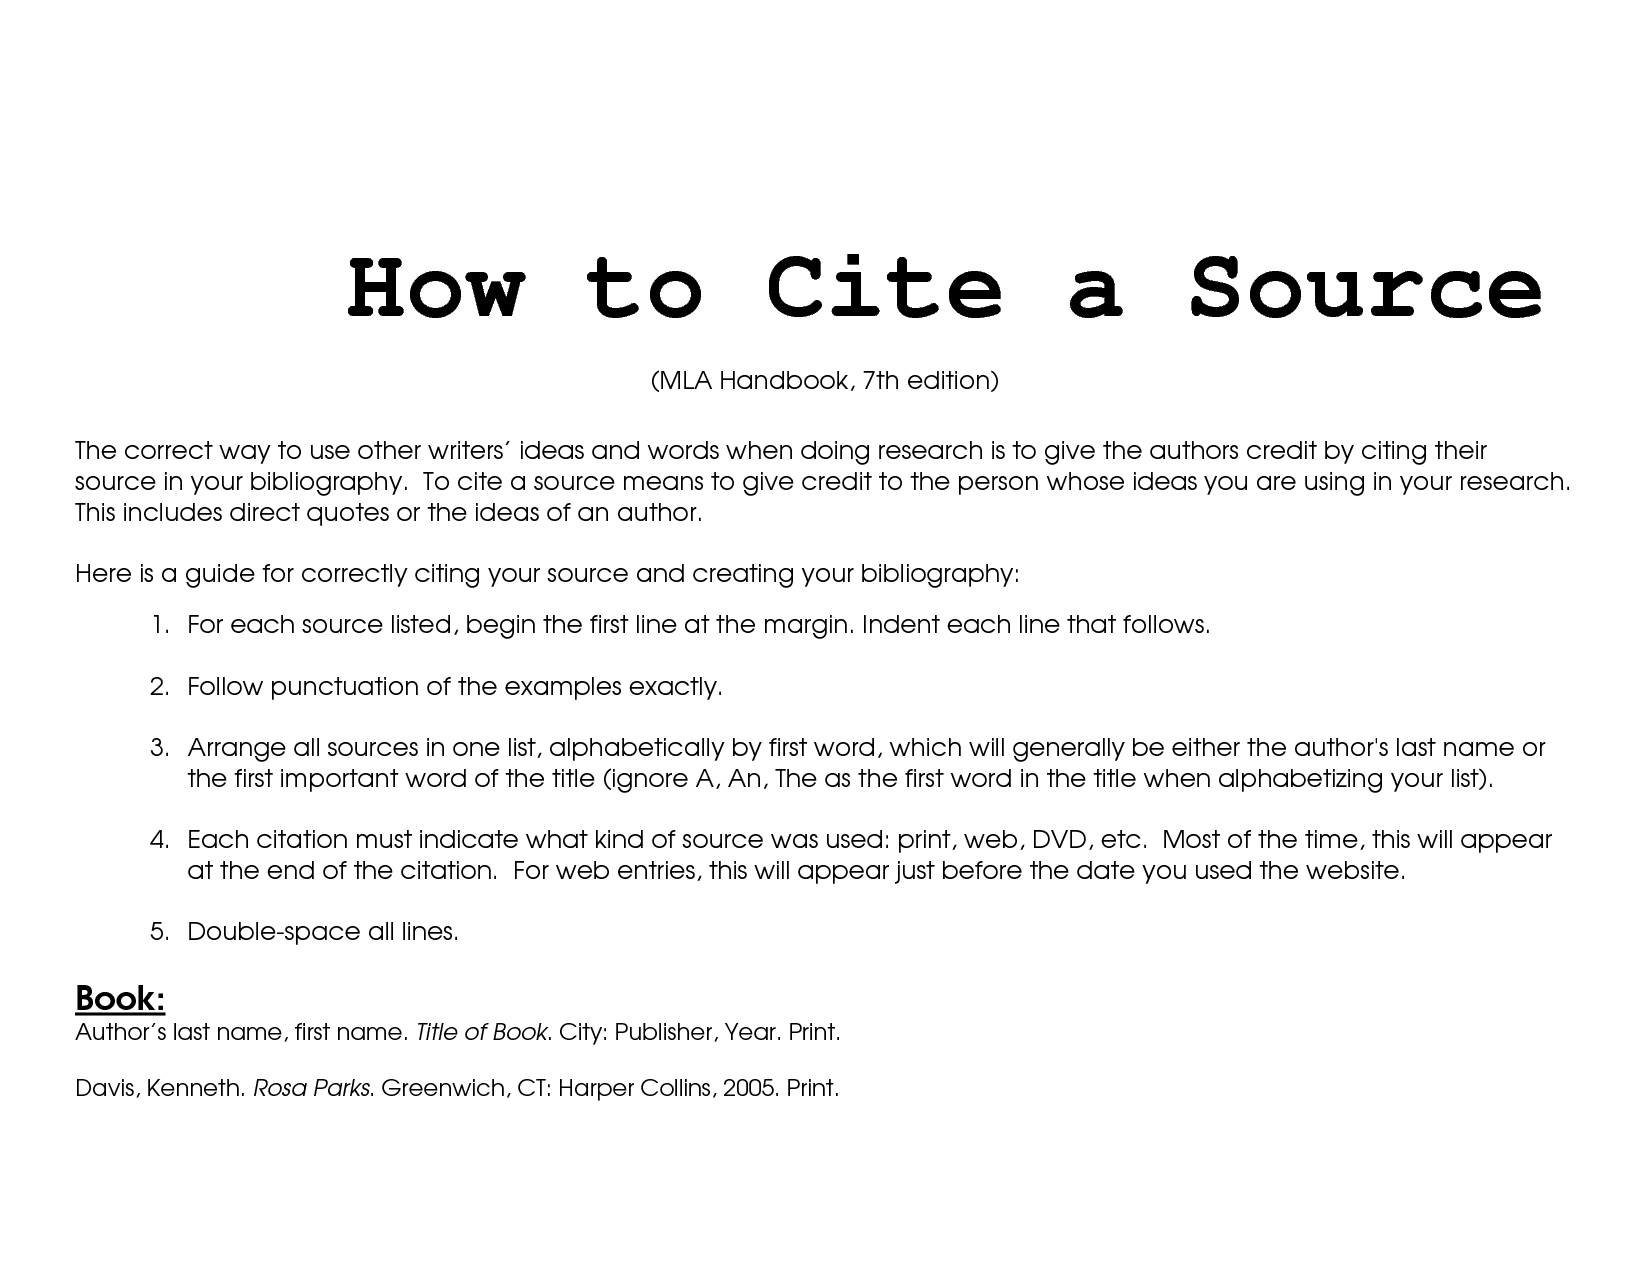 007 Mla How To Cite Source In Research Paper Unbelievable A Format Full